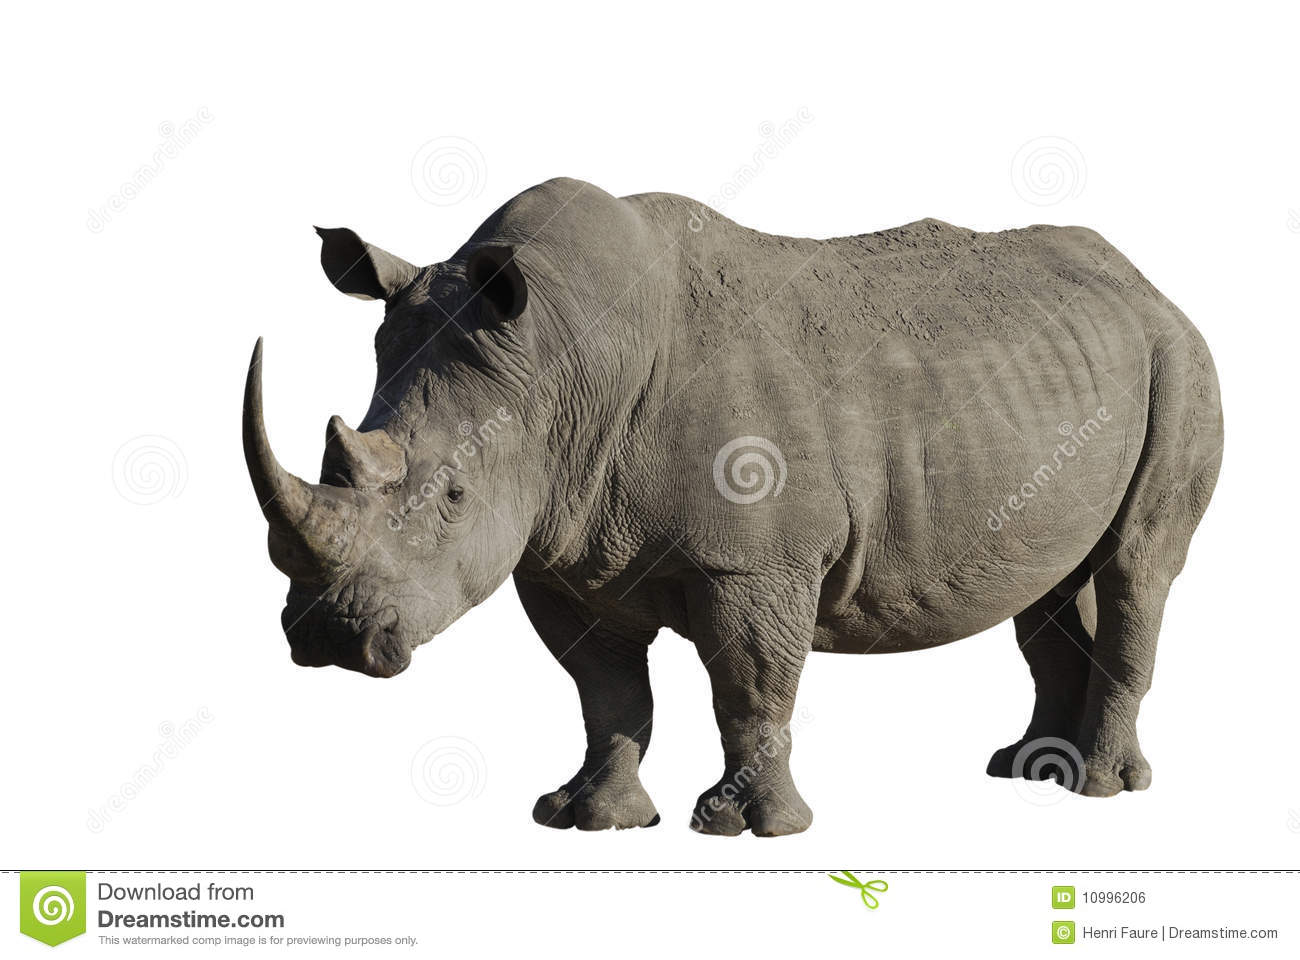 big male rhinoceros royalty free stock image image 10996206 baby rhinoceros clipart rhinoceros clip art black and white